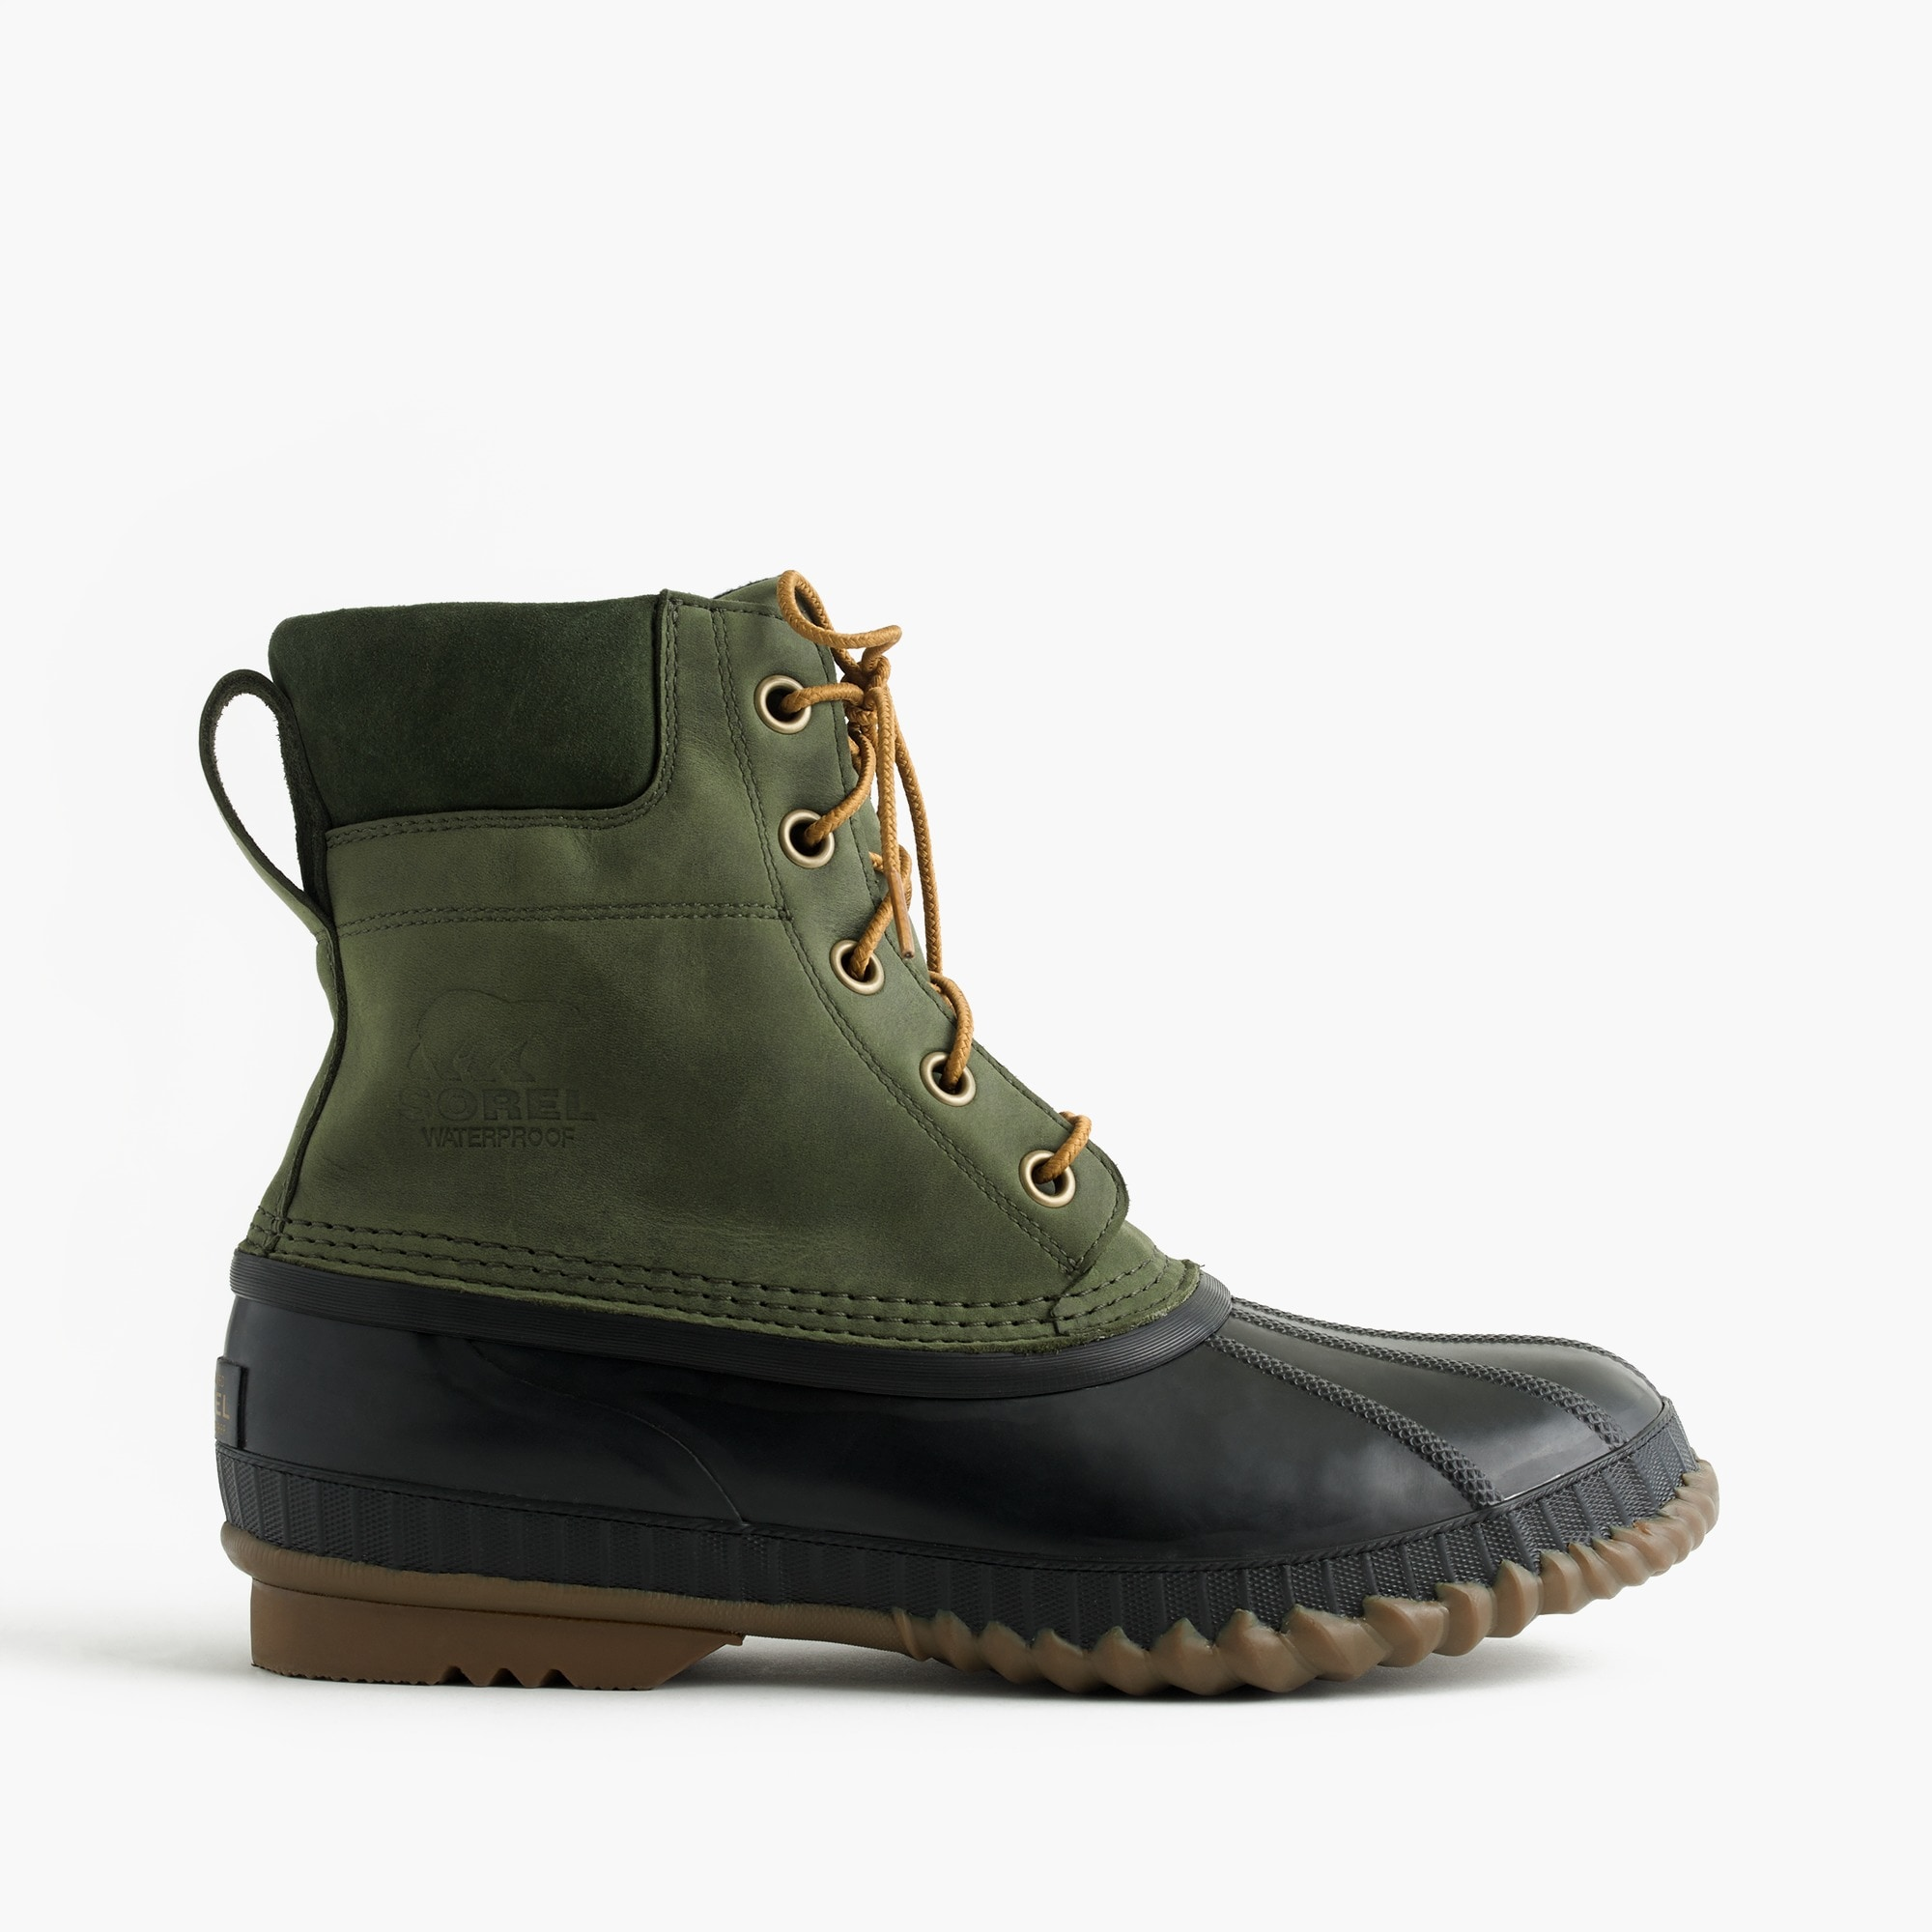 mens Sorel® for J.Crew Cheyanne™ boots in pine